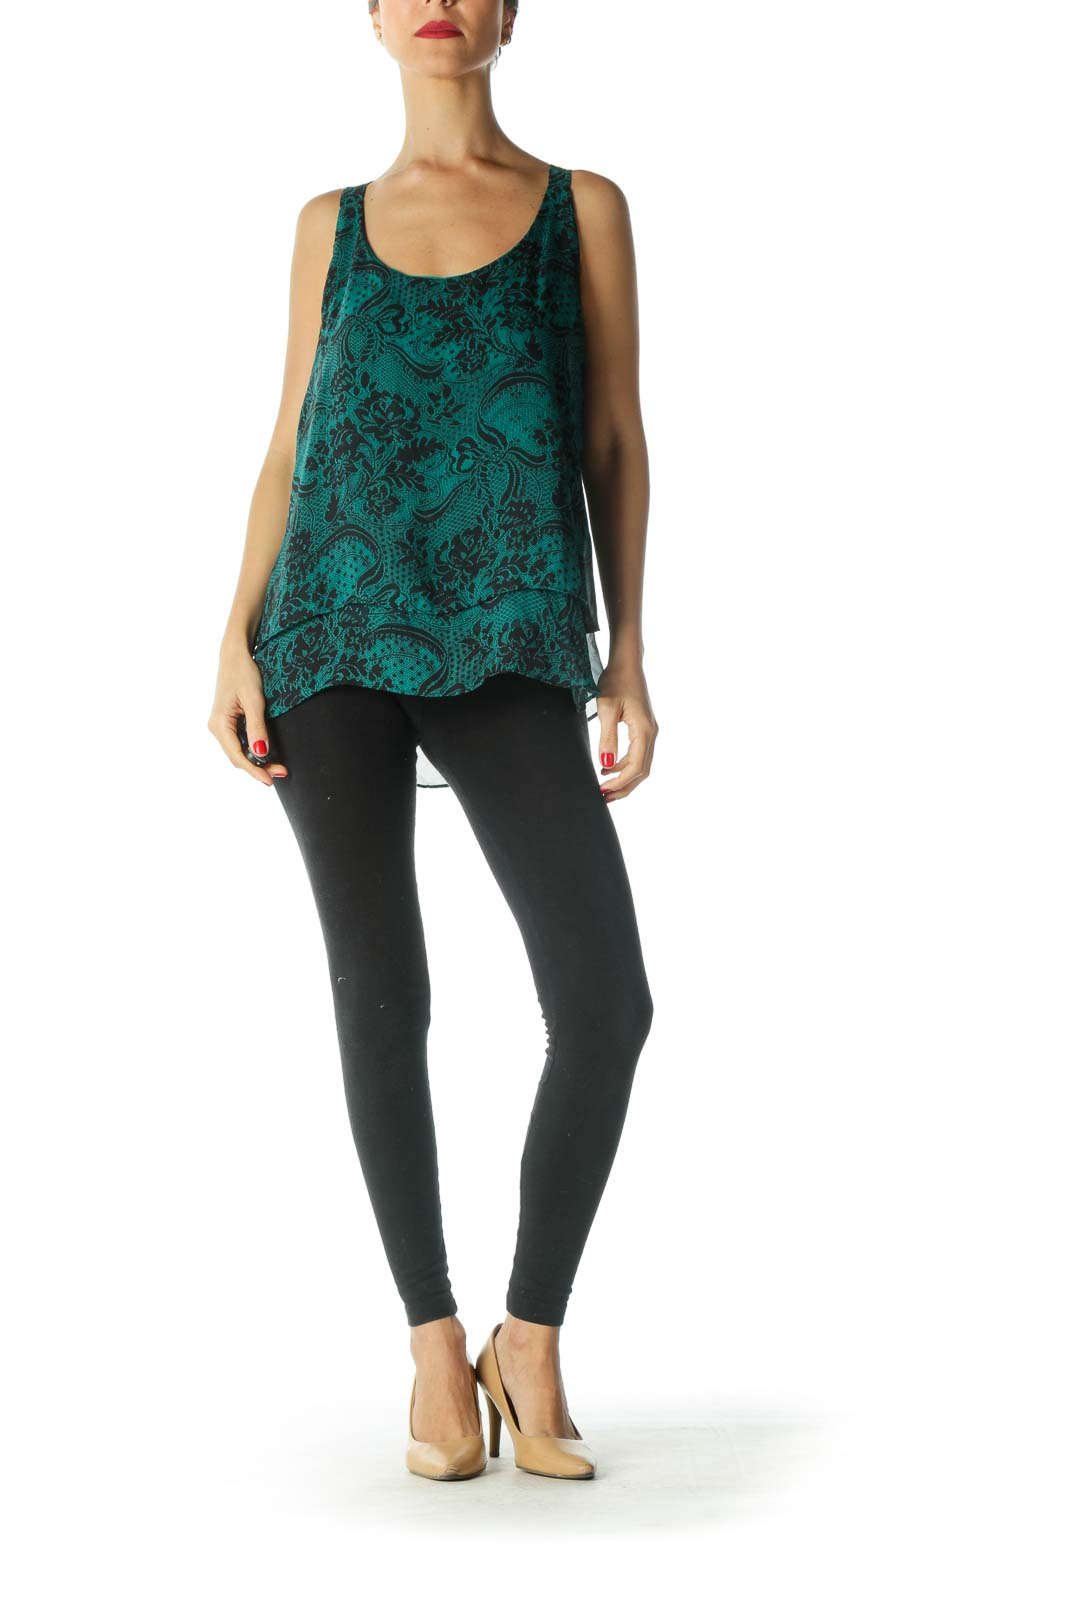 Black and Green Floral Print Tank Top